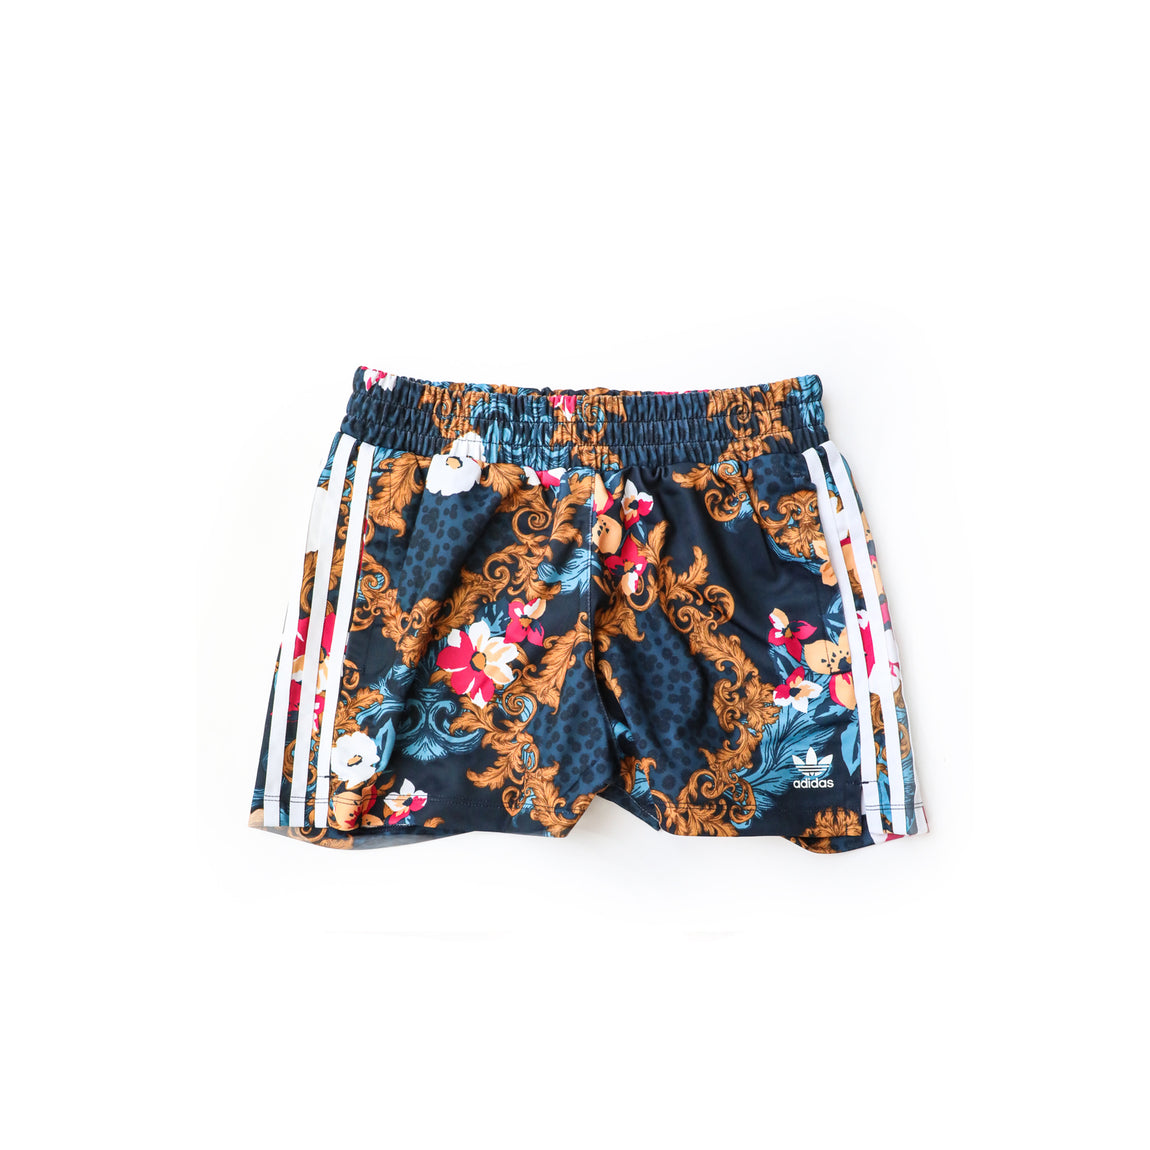 Adidas Originals Women's Shorts (Multicolor/Legend Ink) - Adidas Originals Women's Shorts (Multicolor/Legend Ink) -